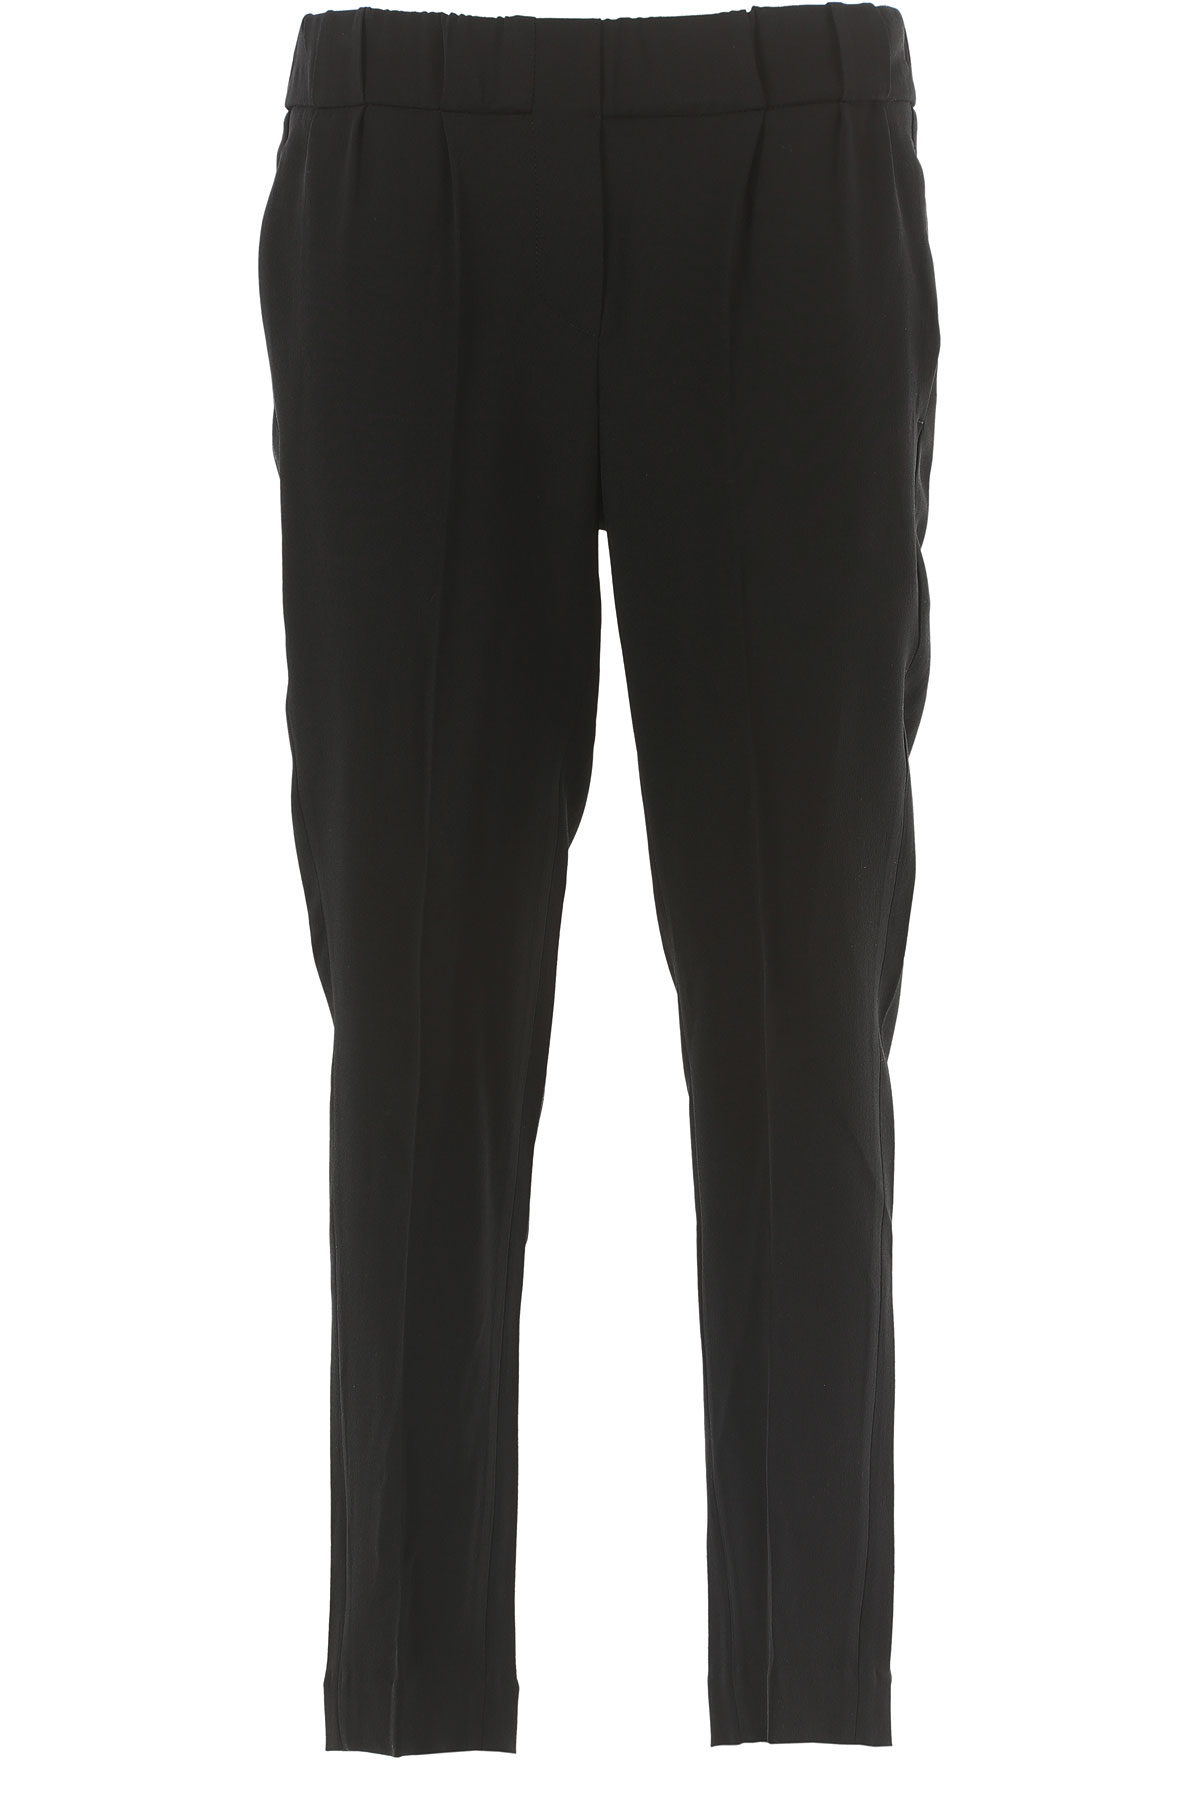 Brunello Cucinelli Pants for Women On Sale in Outlet, acetate, 2019, 30 32